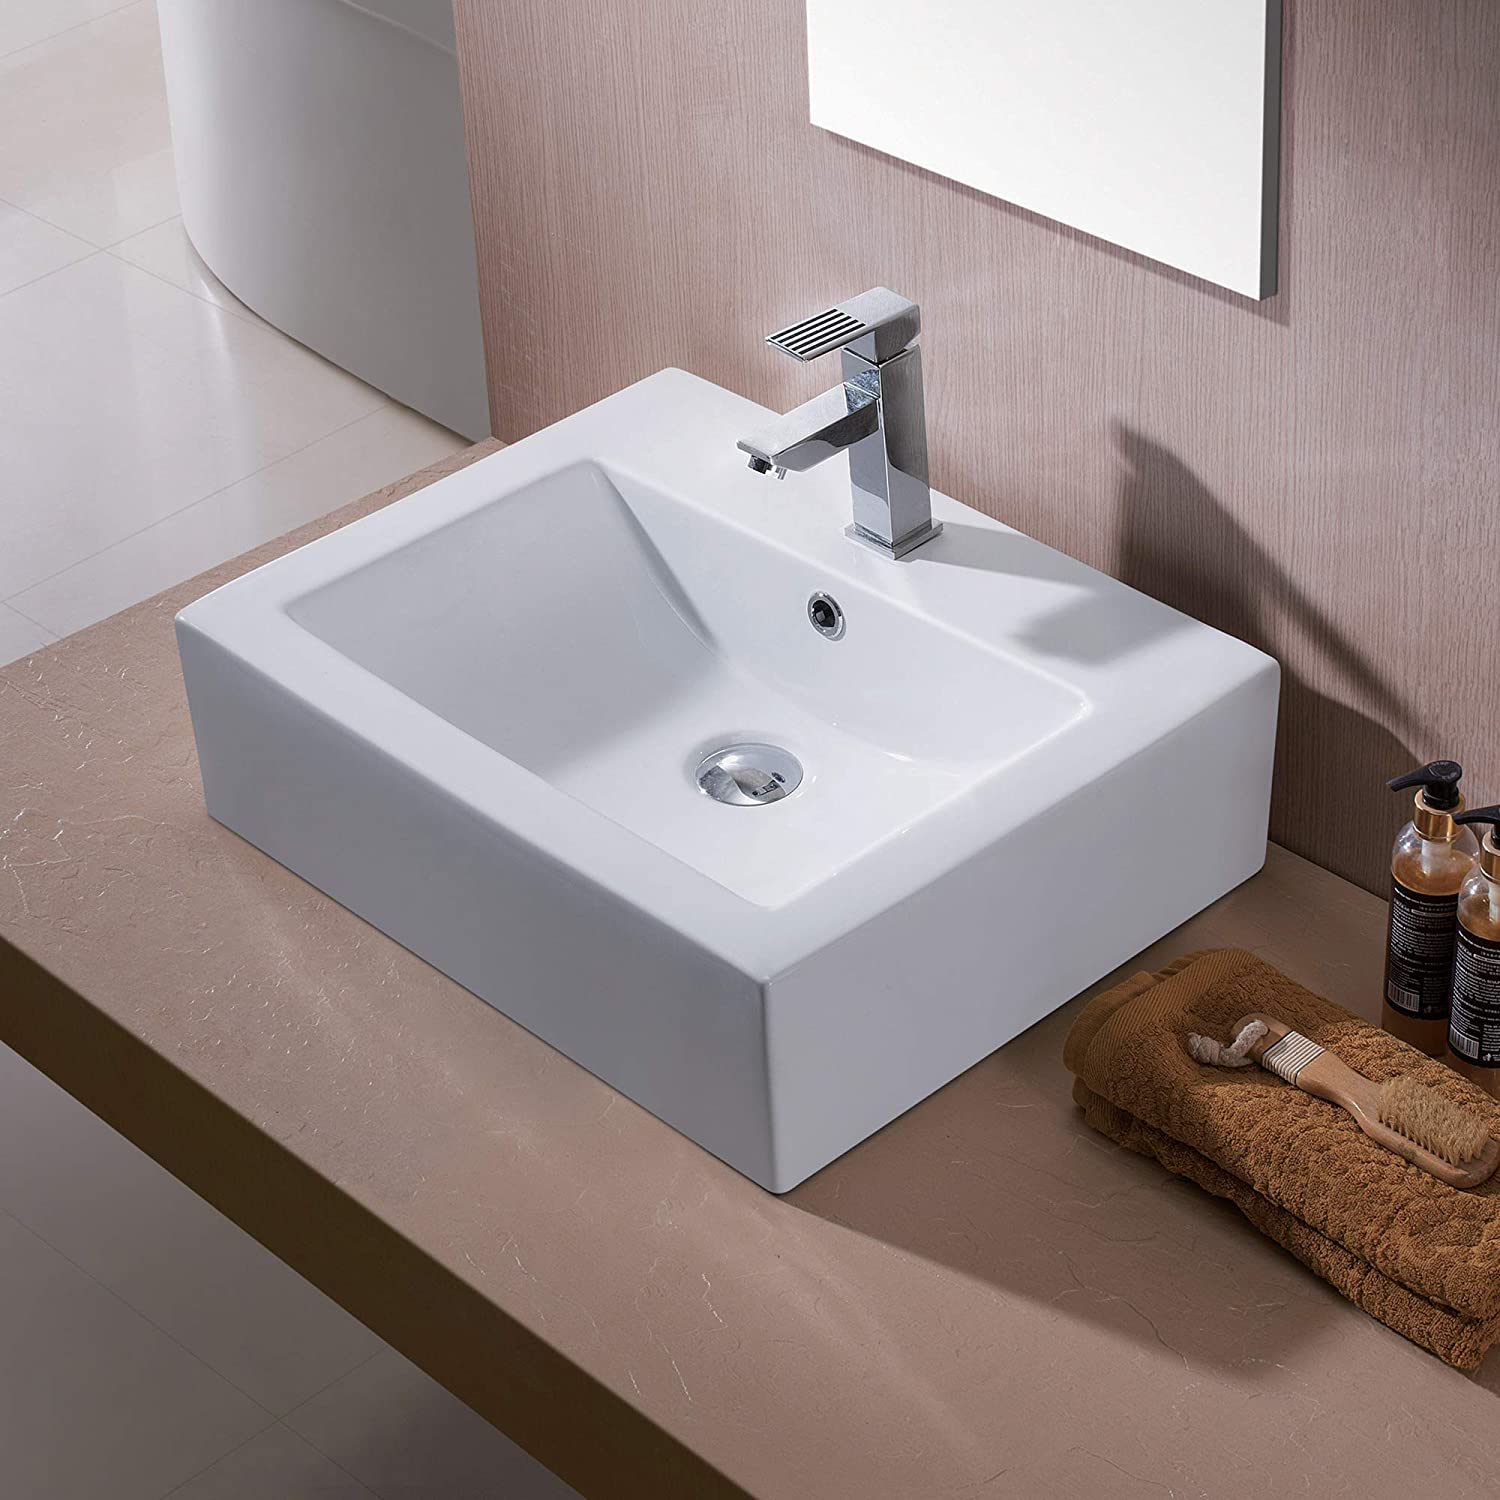 Luxier CS-003 Bathroom Porcelain Ceramic Vessel Vanity Sink Art Basin